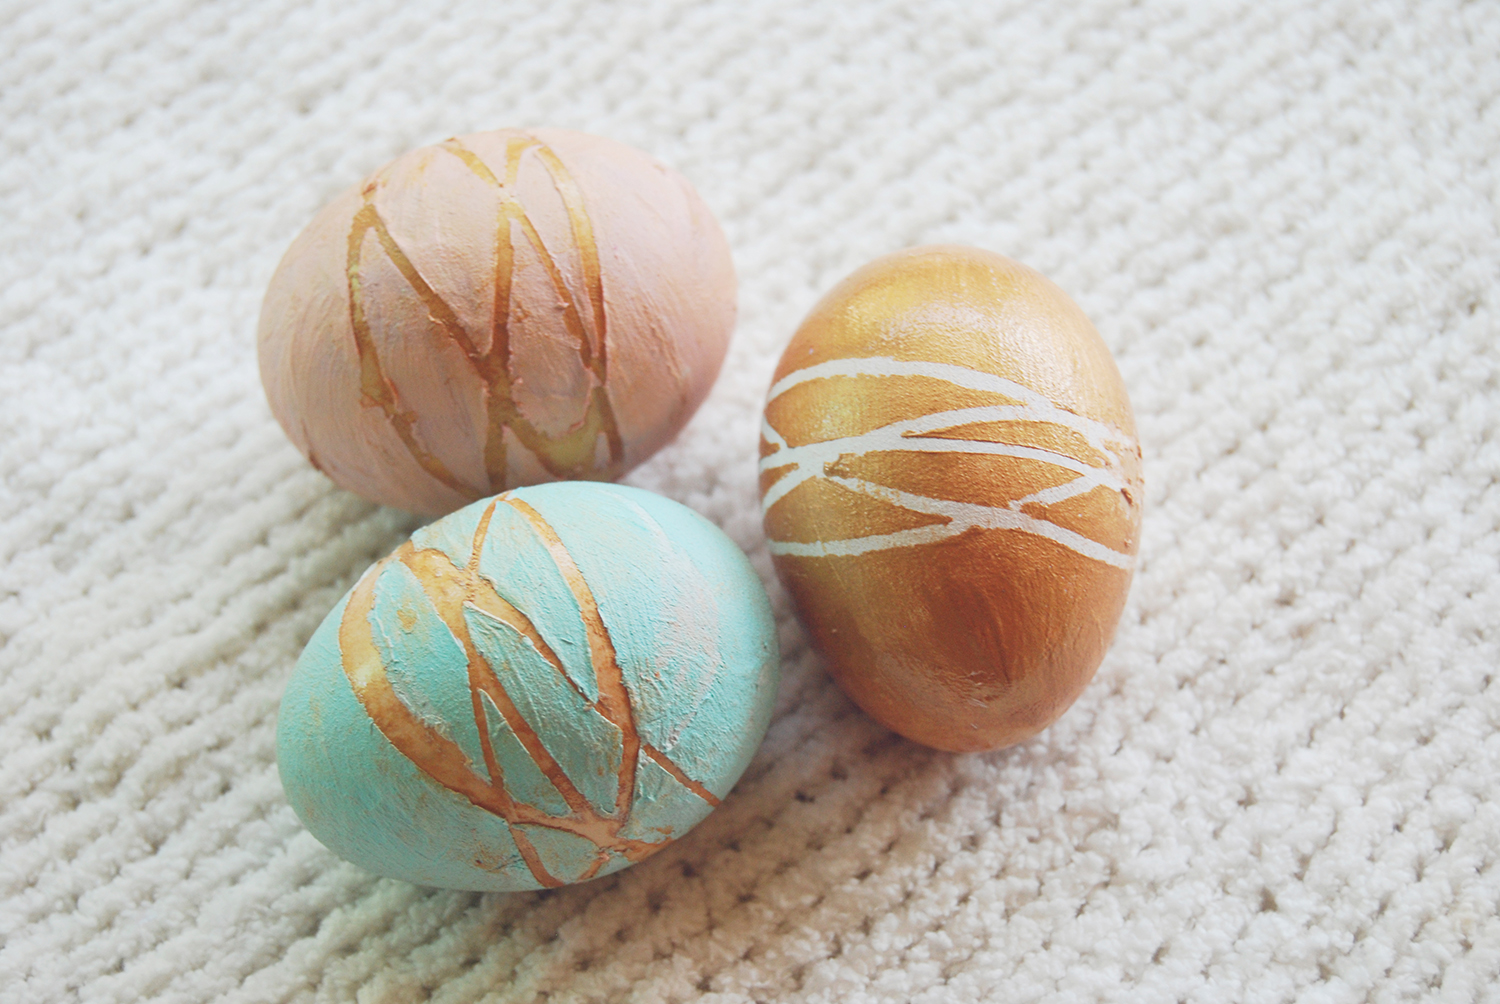 Eggs with Rubber Bands